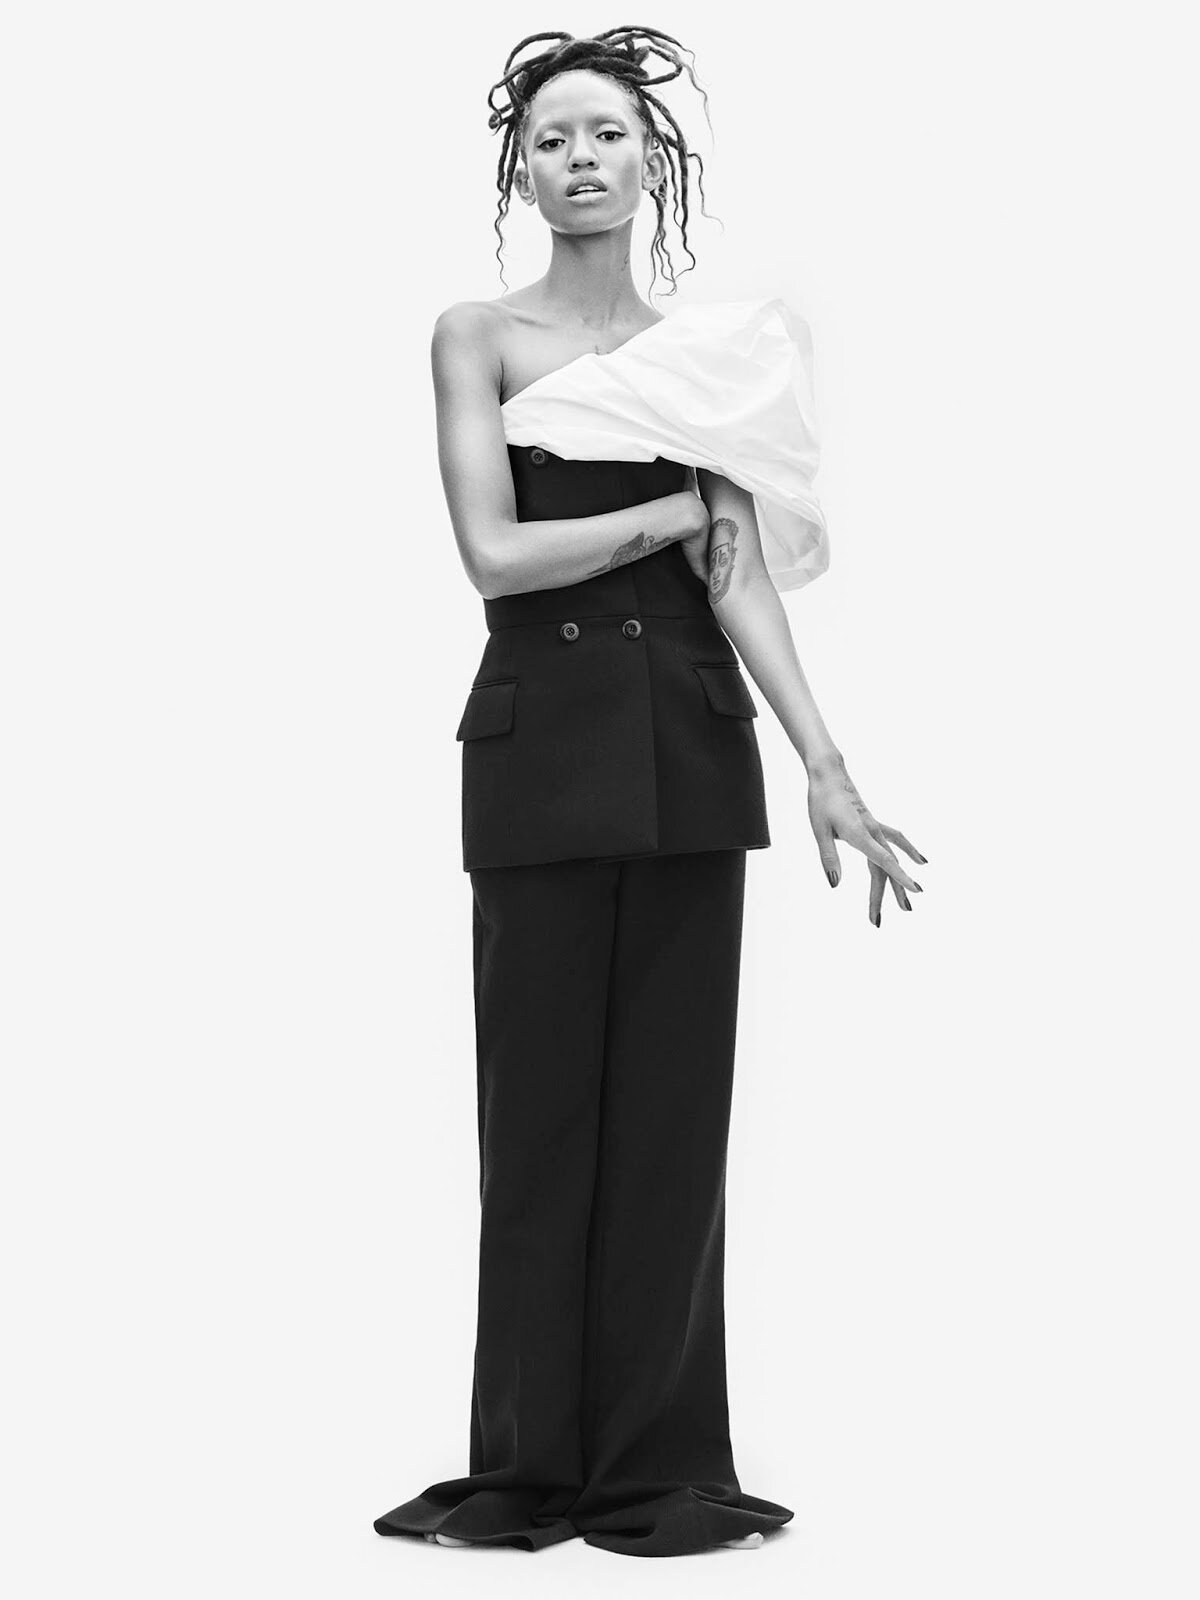 Clare Waight Keller knows her way around occasionwear. Majestic royal wedding gowns aside, her inventive eveningwear comes replete with magnificent puffs of crinkled taffeta for fall.  Bustier, top, and pants, all Givenchy.  Adesuwa Aighewi by Philip Messmann.